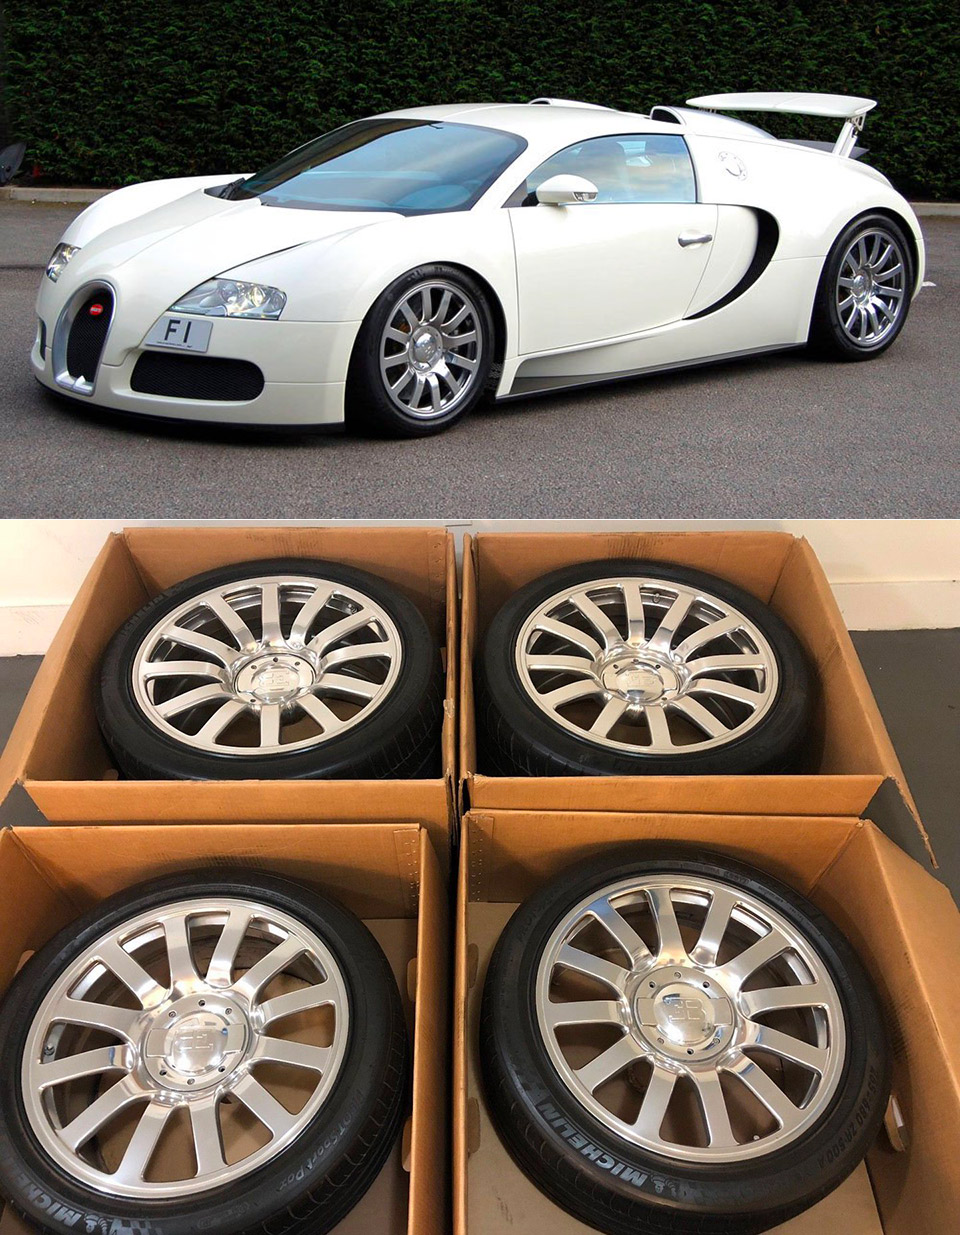 Used Bugatti Veyron Wheels